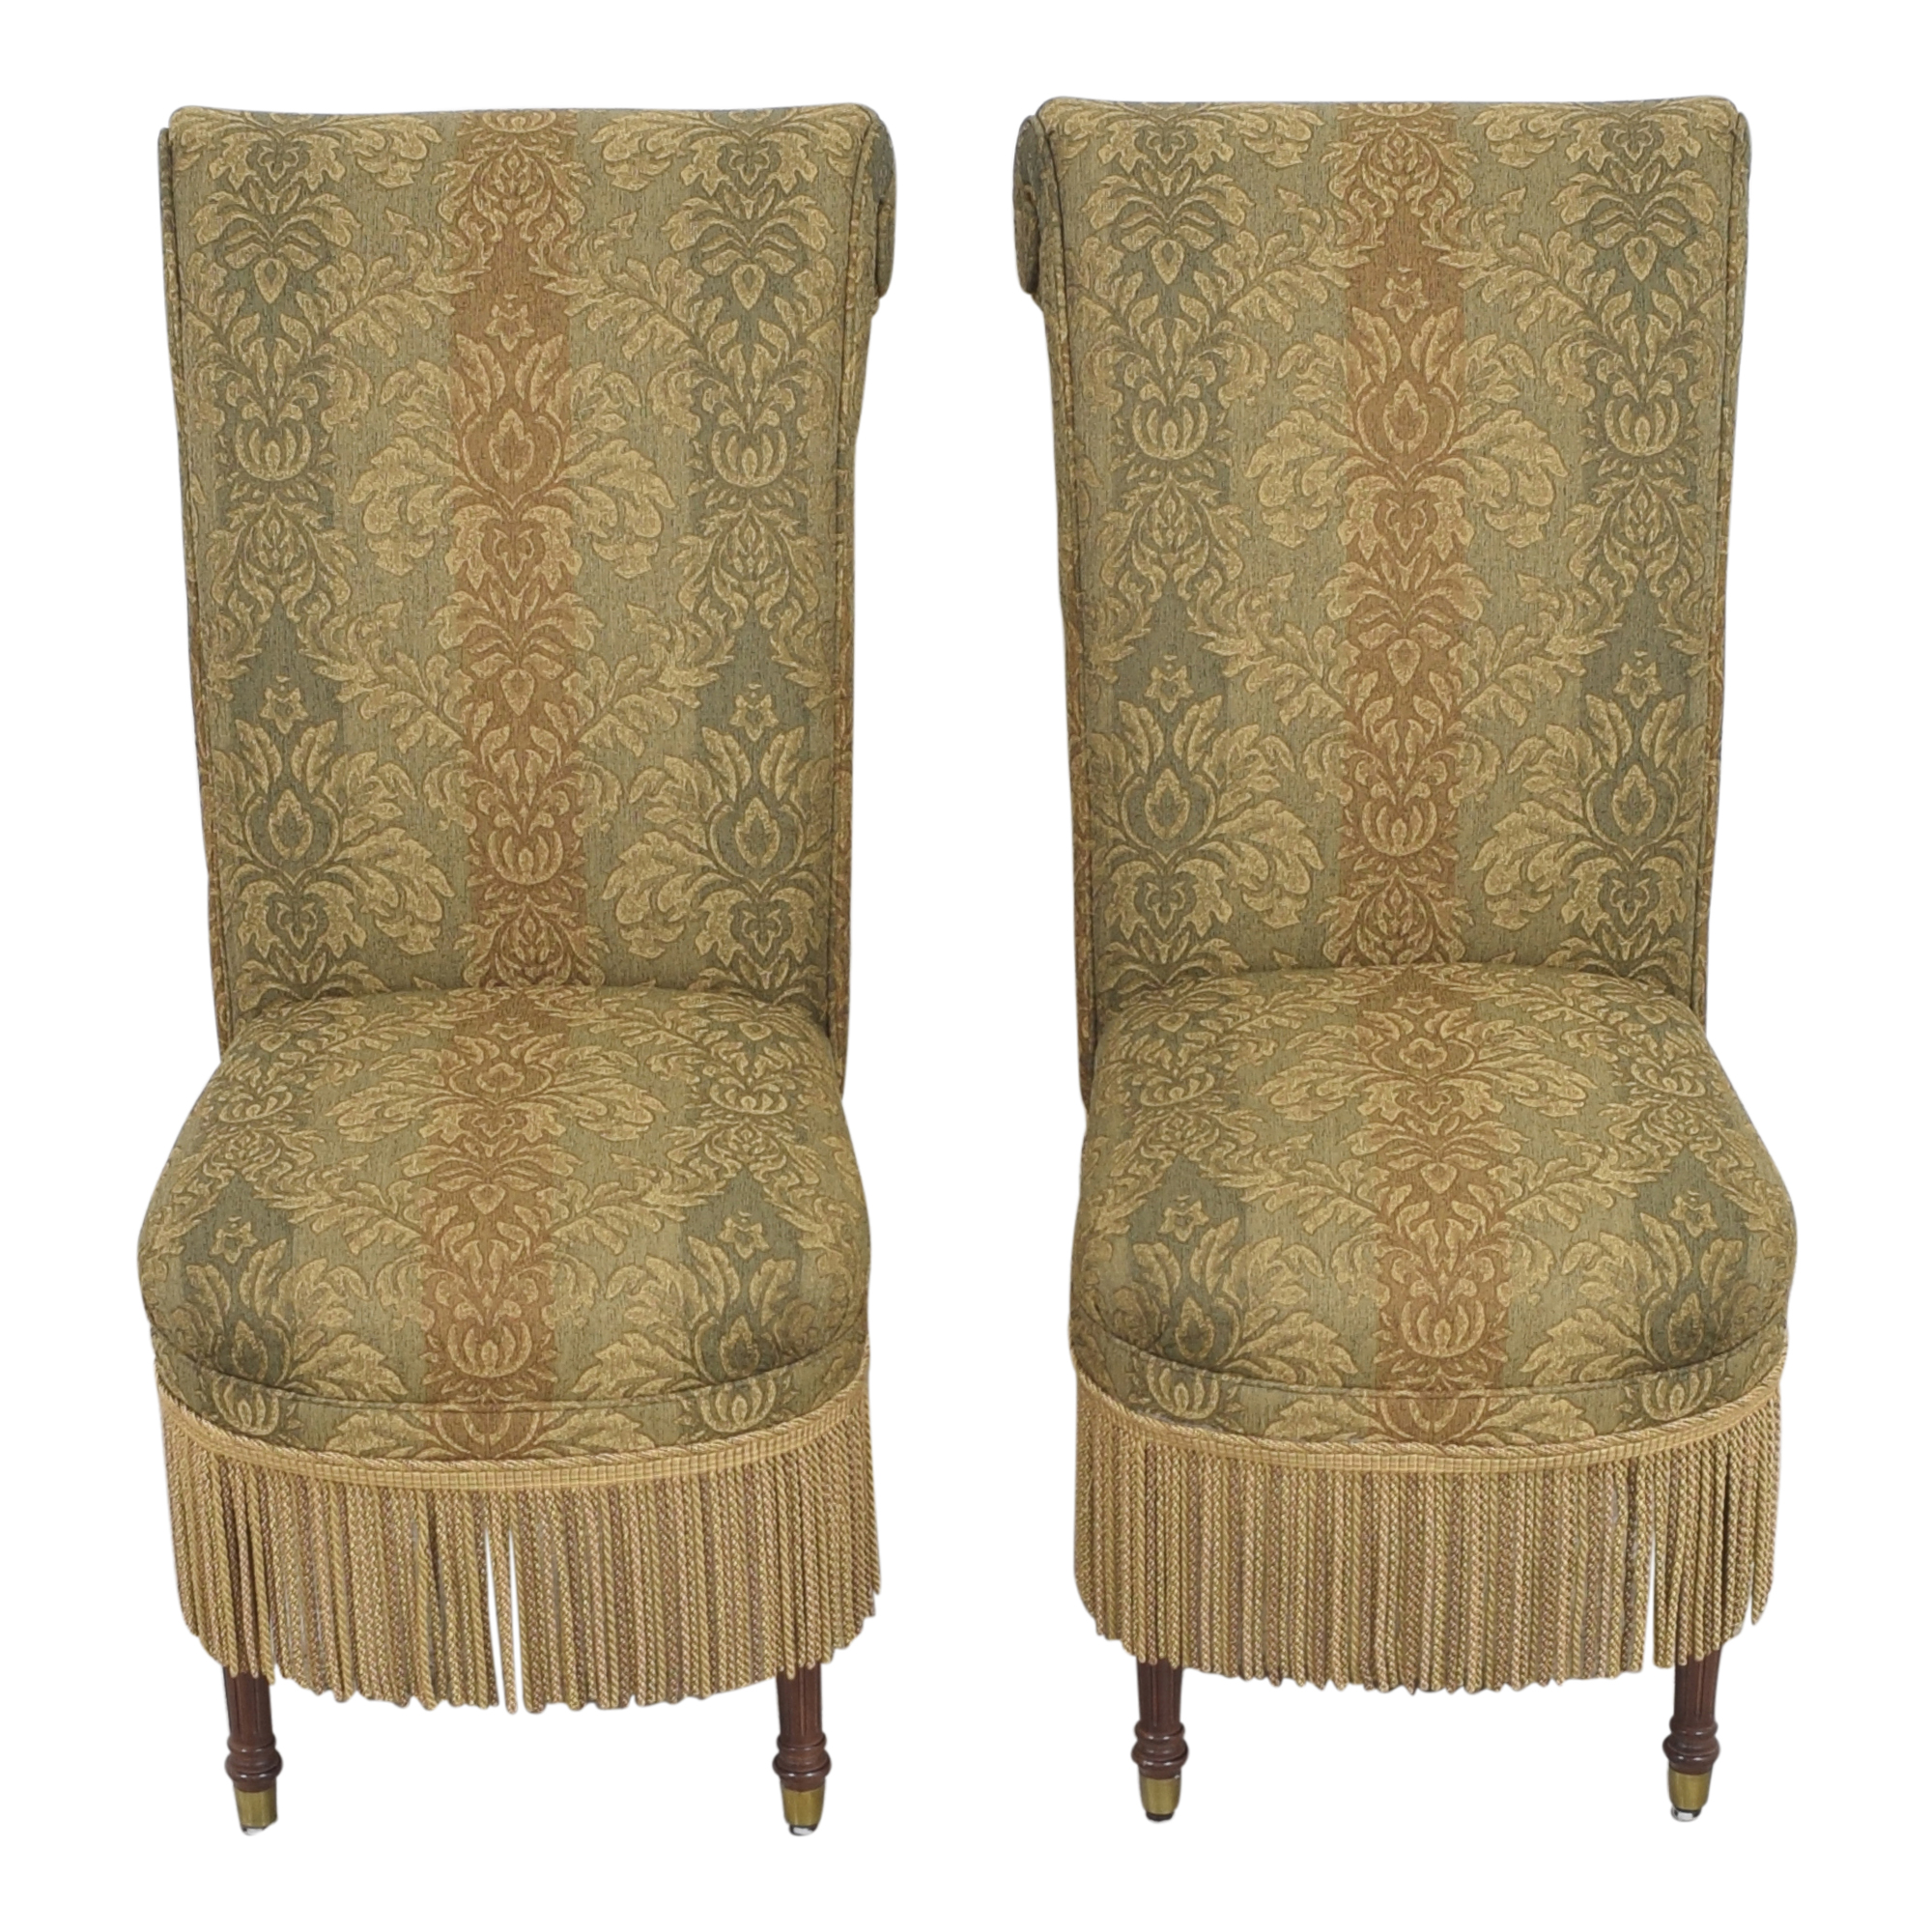 Designmaster Furniture Designmaster Furniture Tasseled Dining Chairs